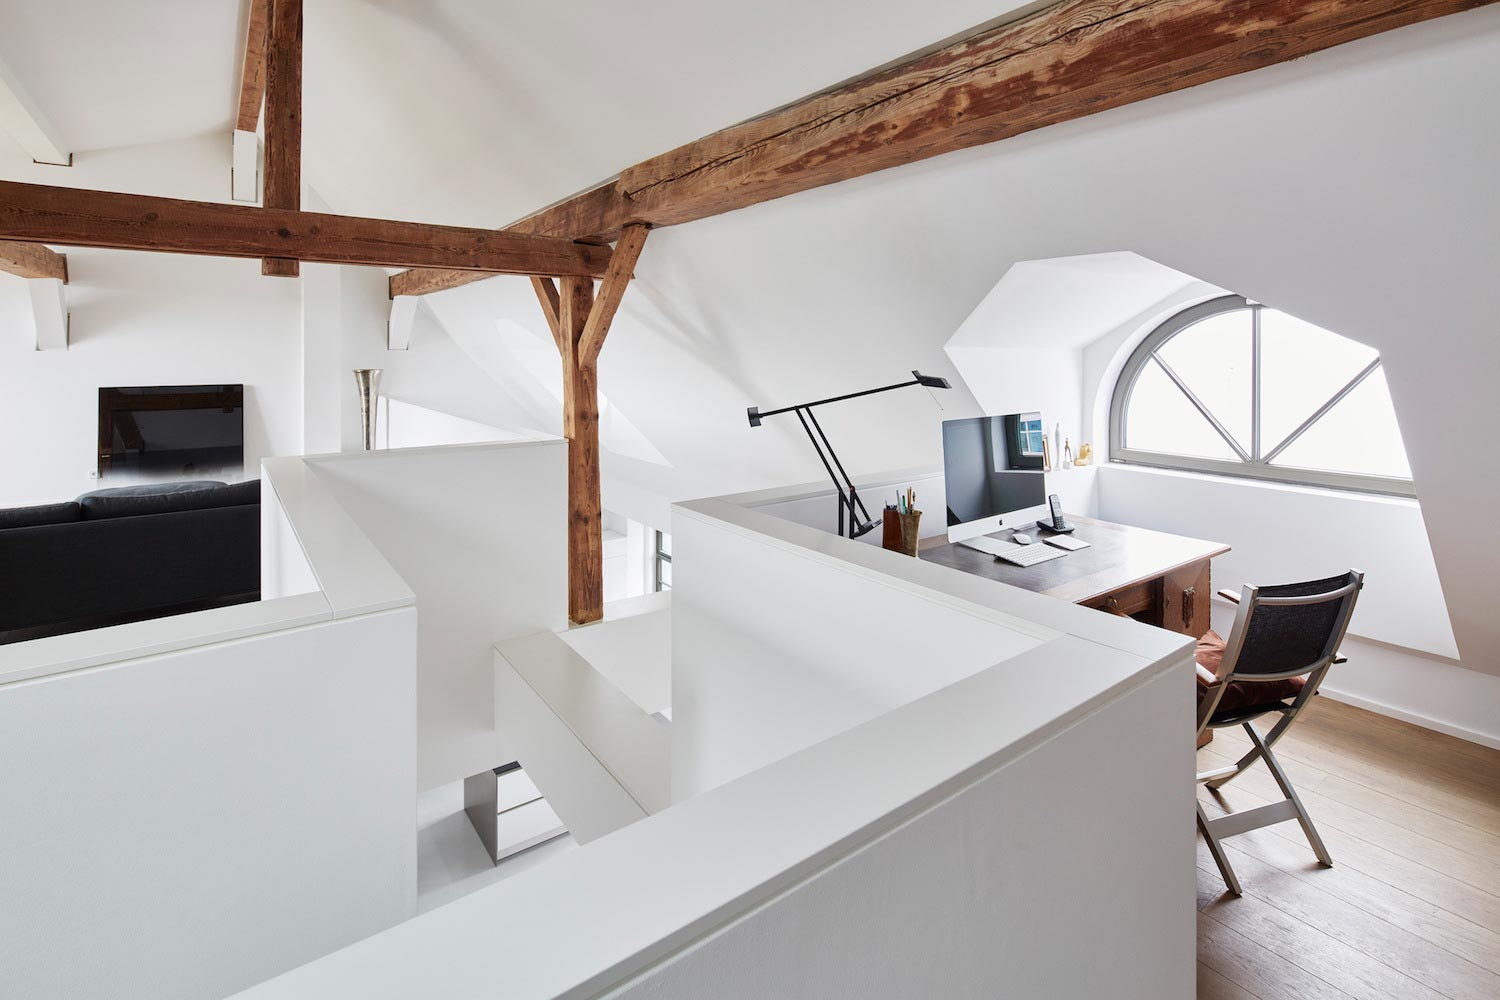 Architecture news and projects | CAANdesign - architecture and home ...